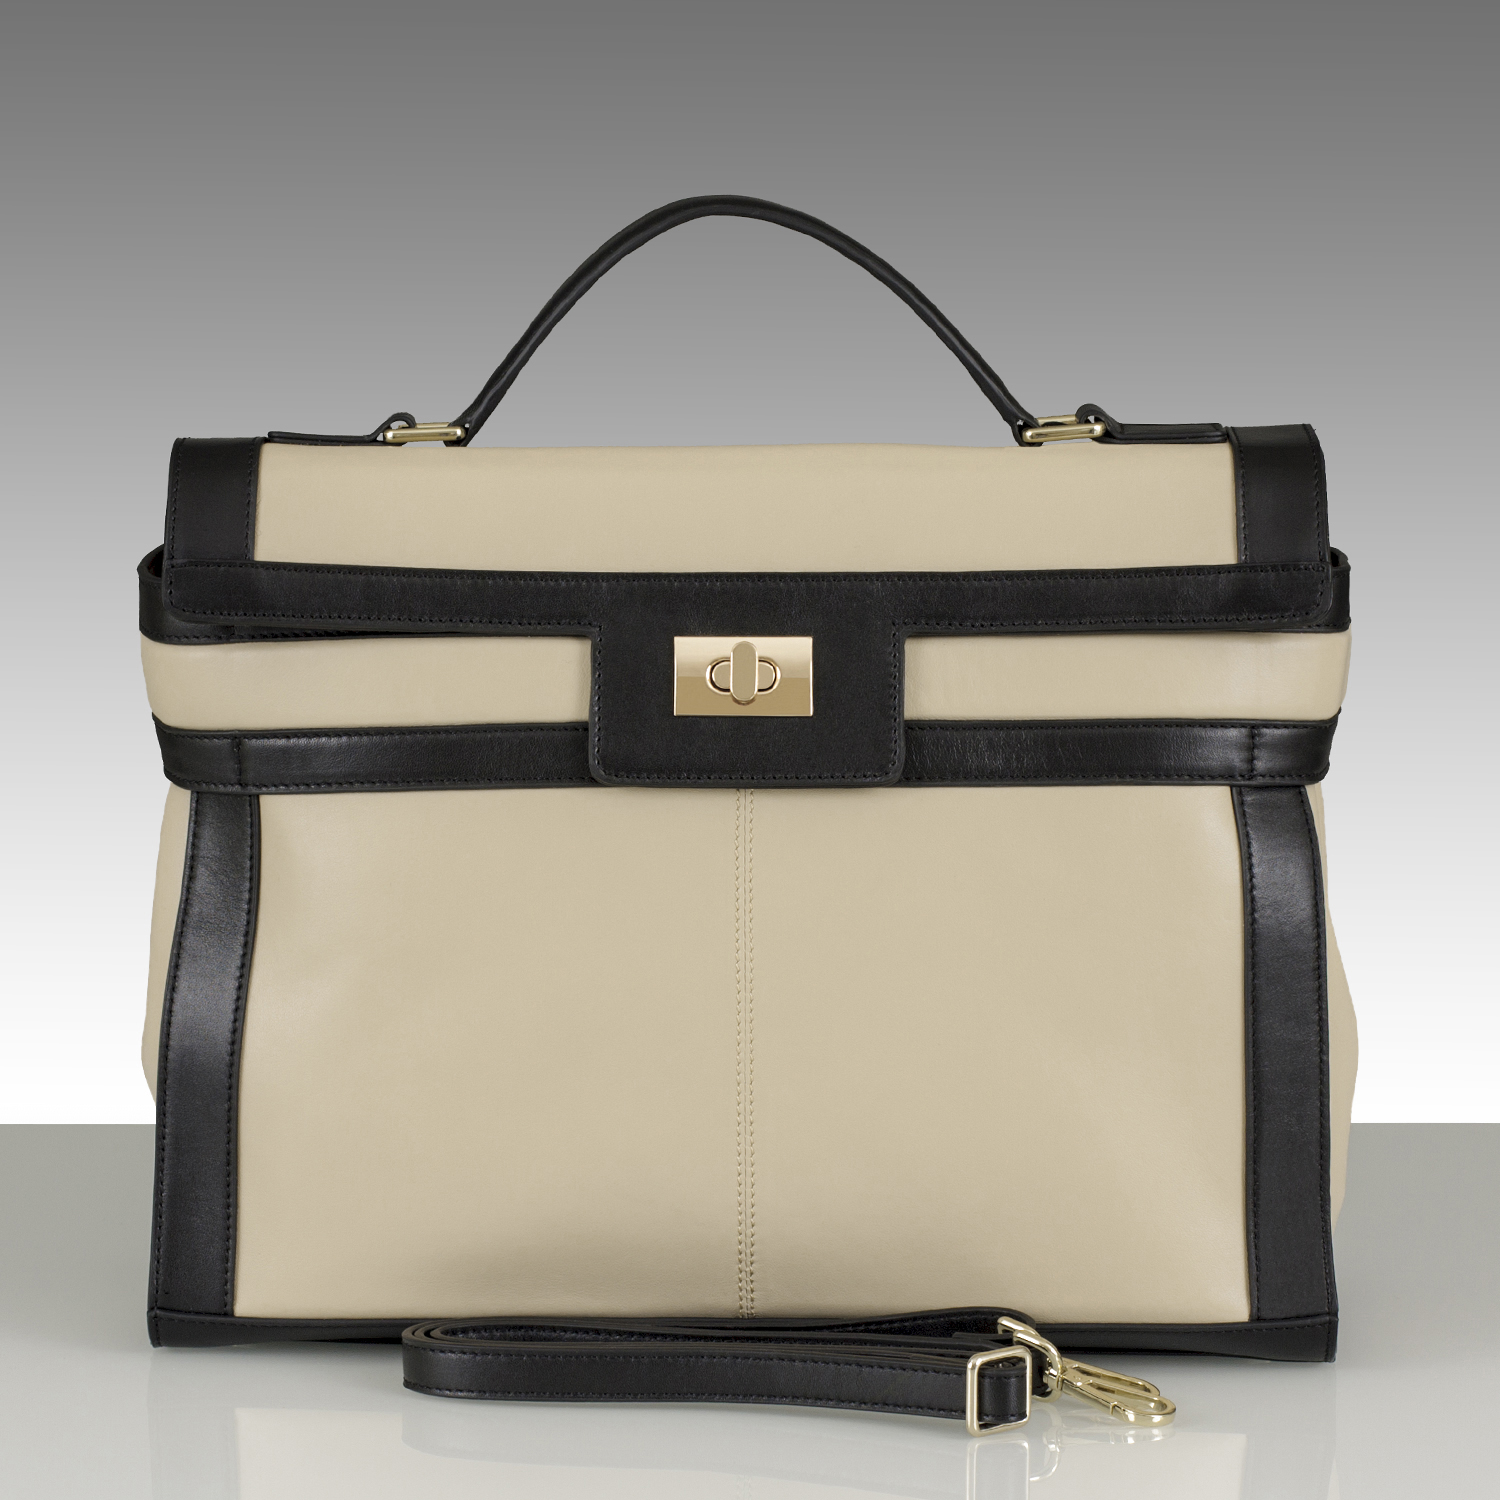 Buy Carrara bag Beige/Black | designer handbags